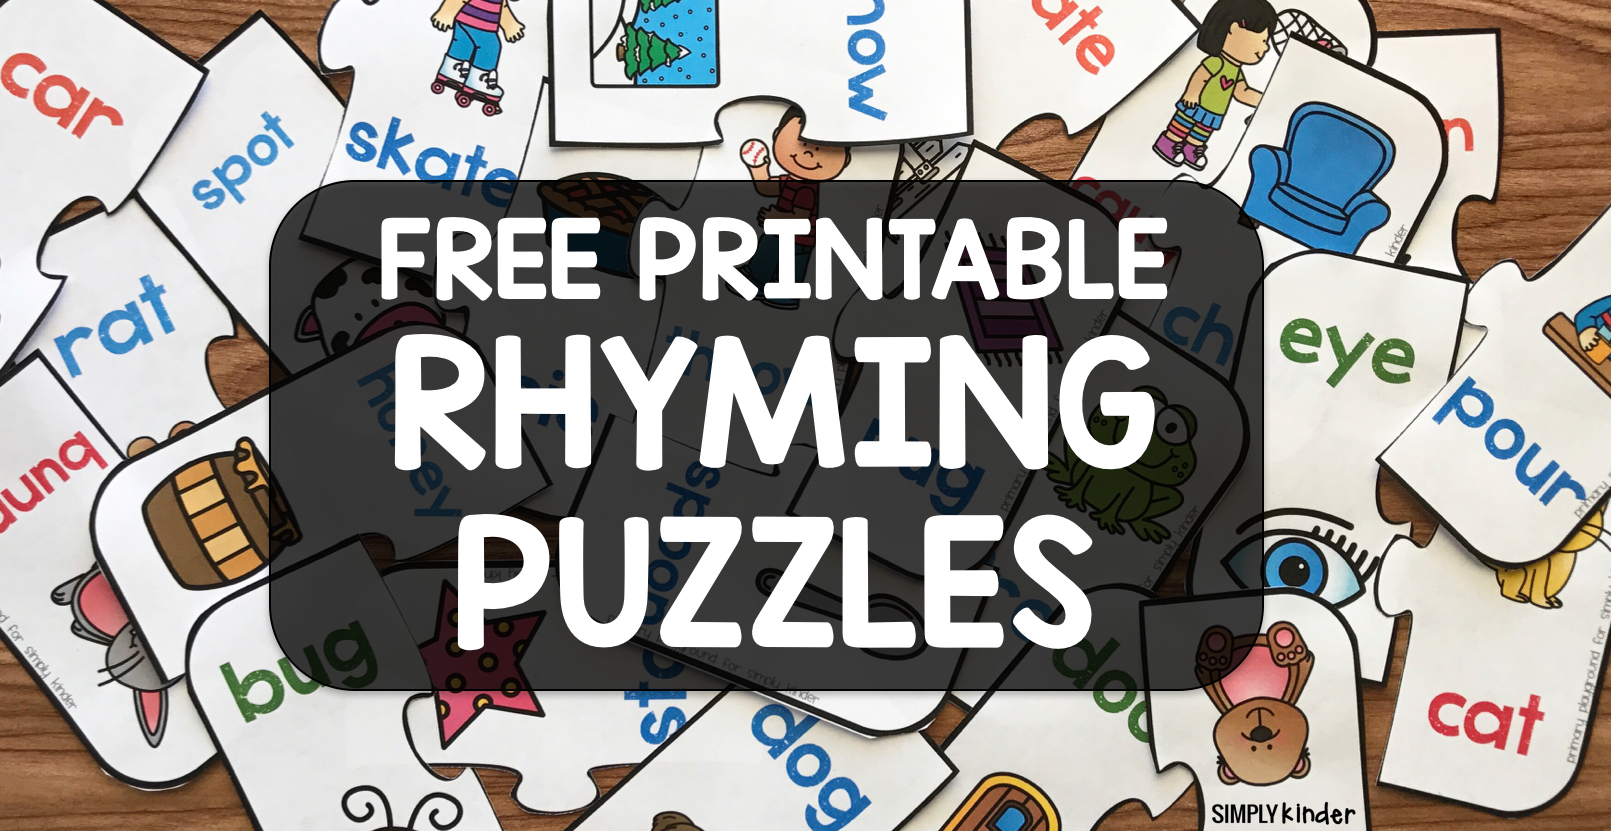 Free Printable Rhyming Puzzles - Simply Kinder - Printable Rhyming Puzzles